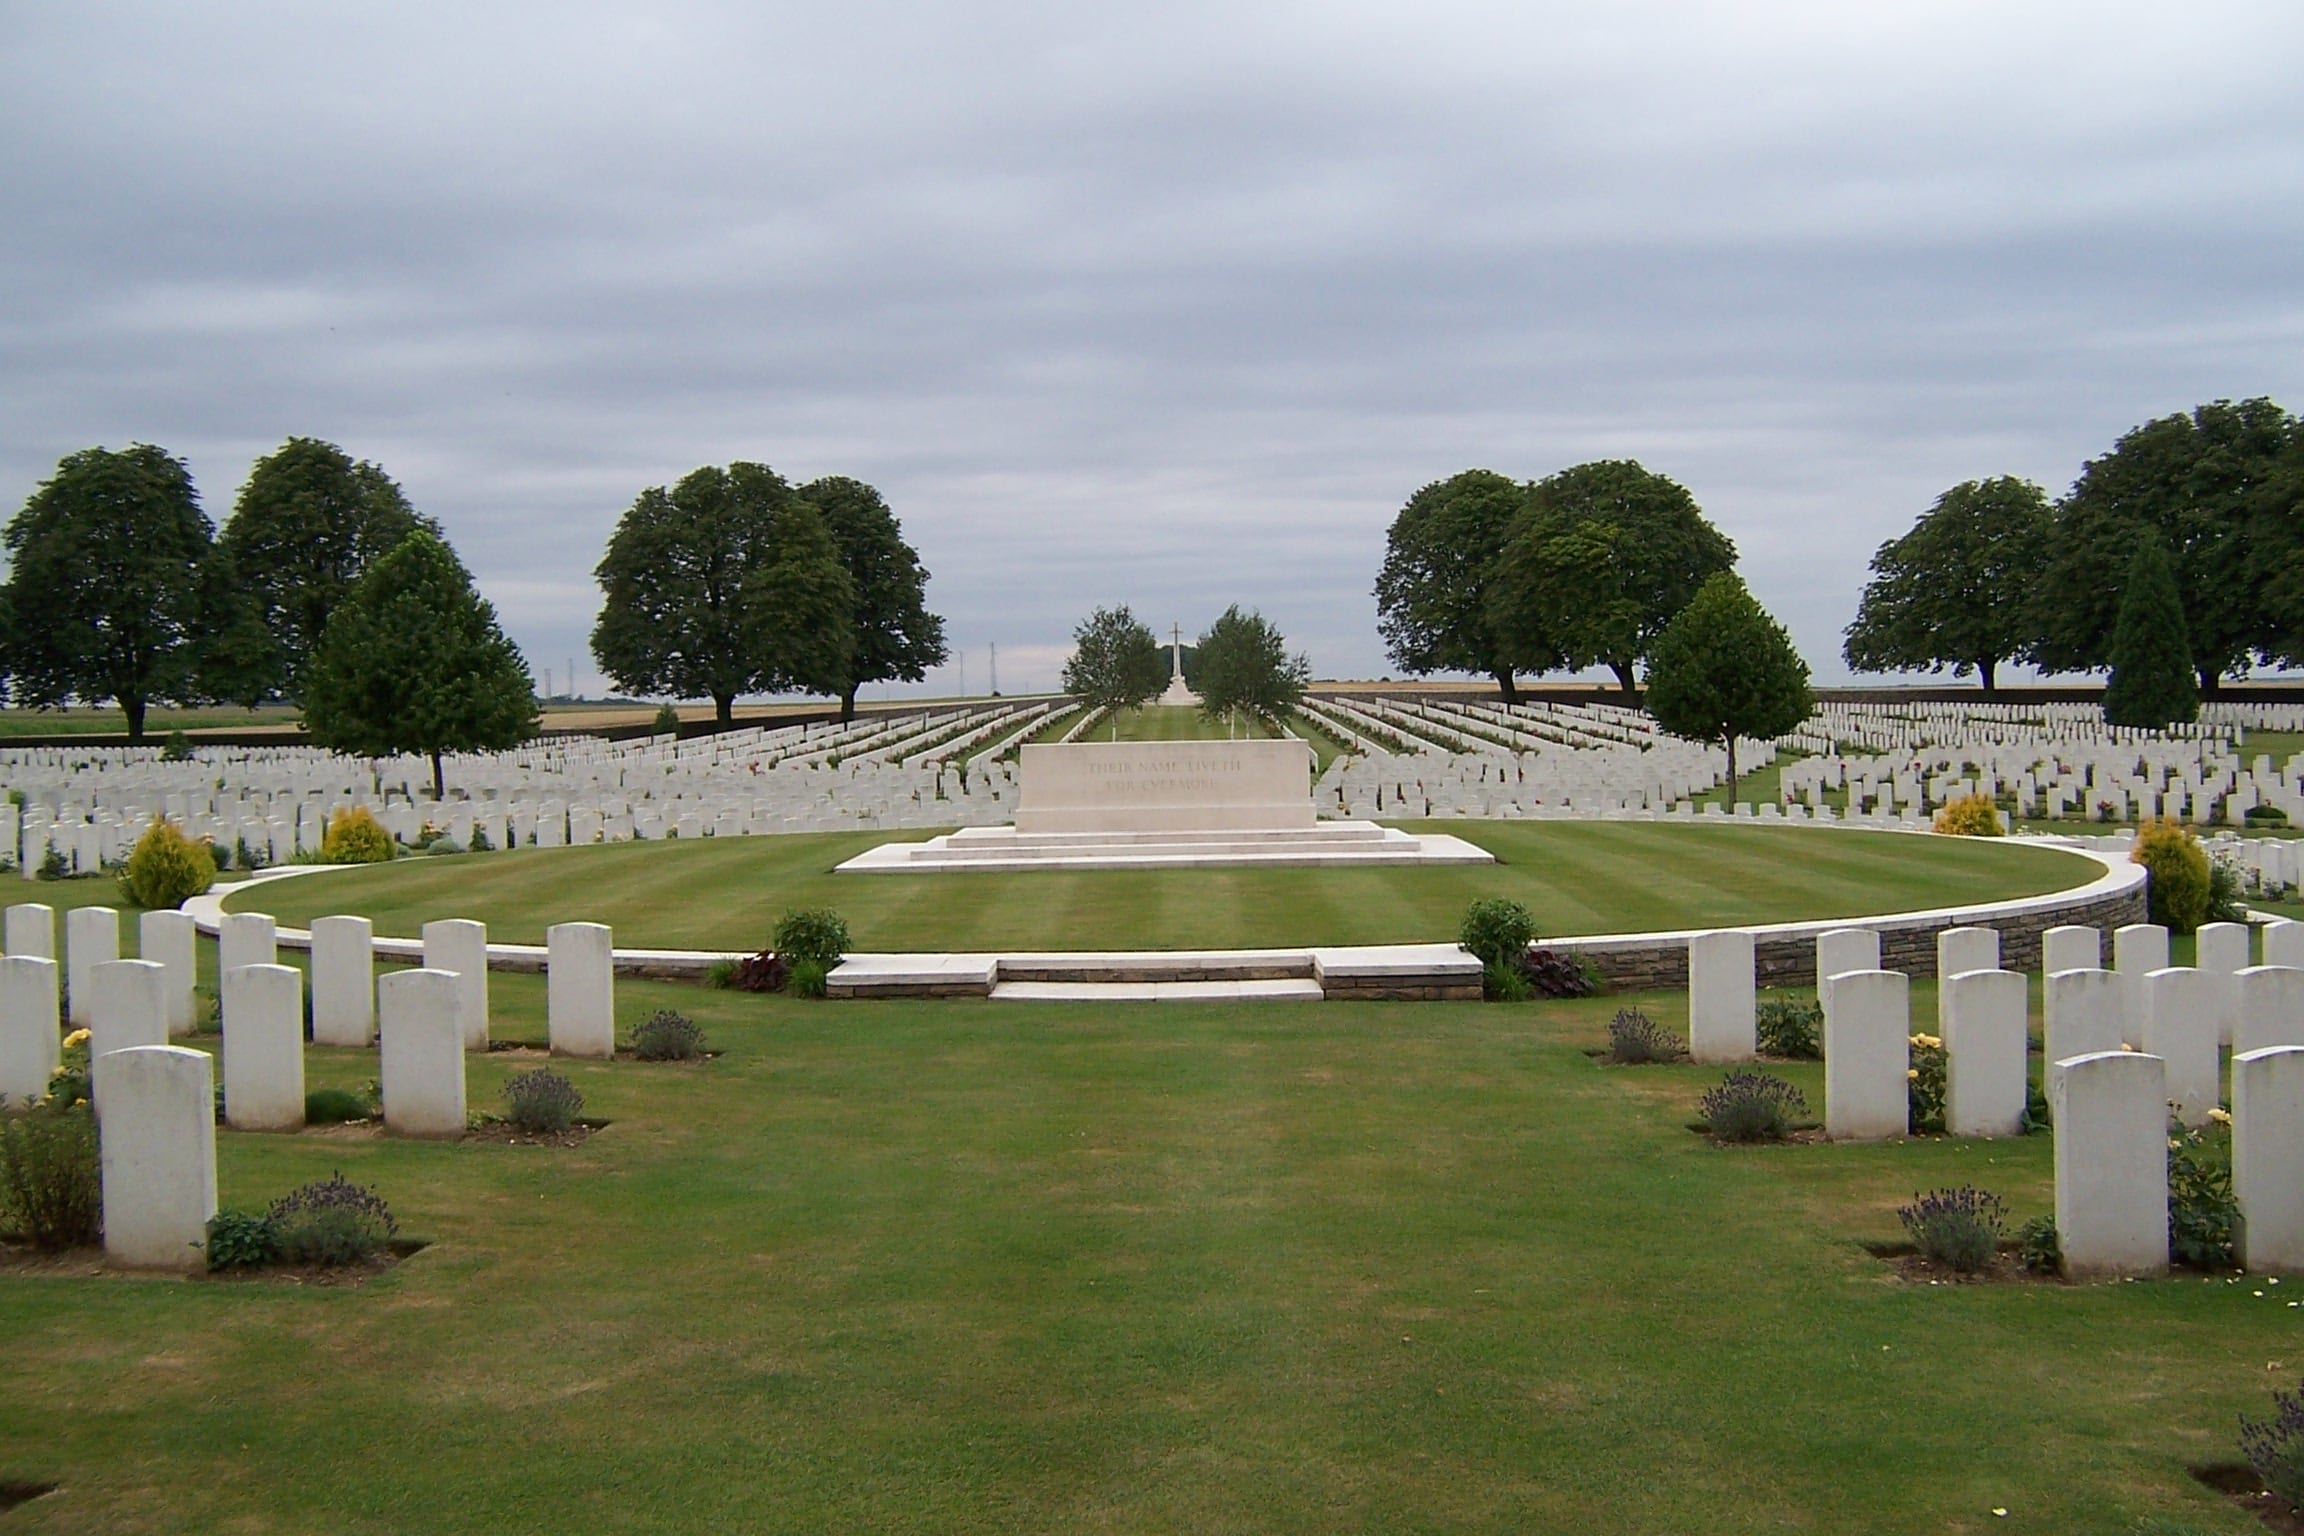 The Vimy Ridge War Cemetery